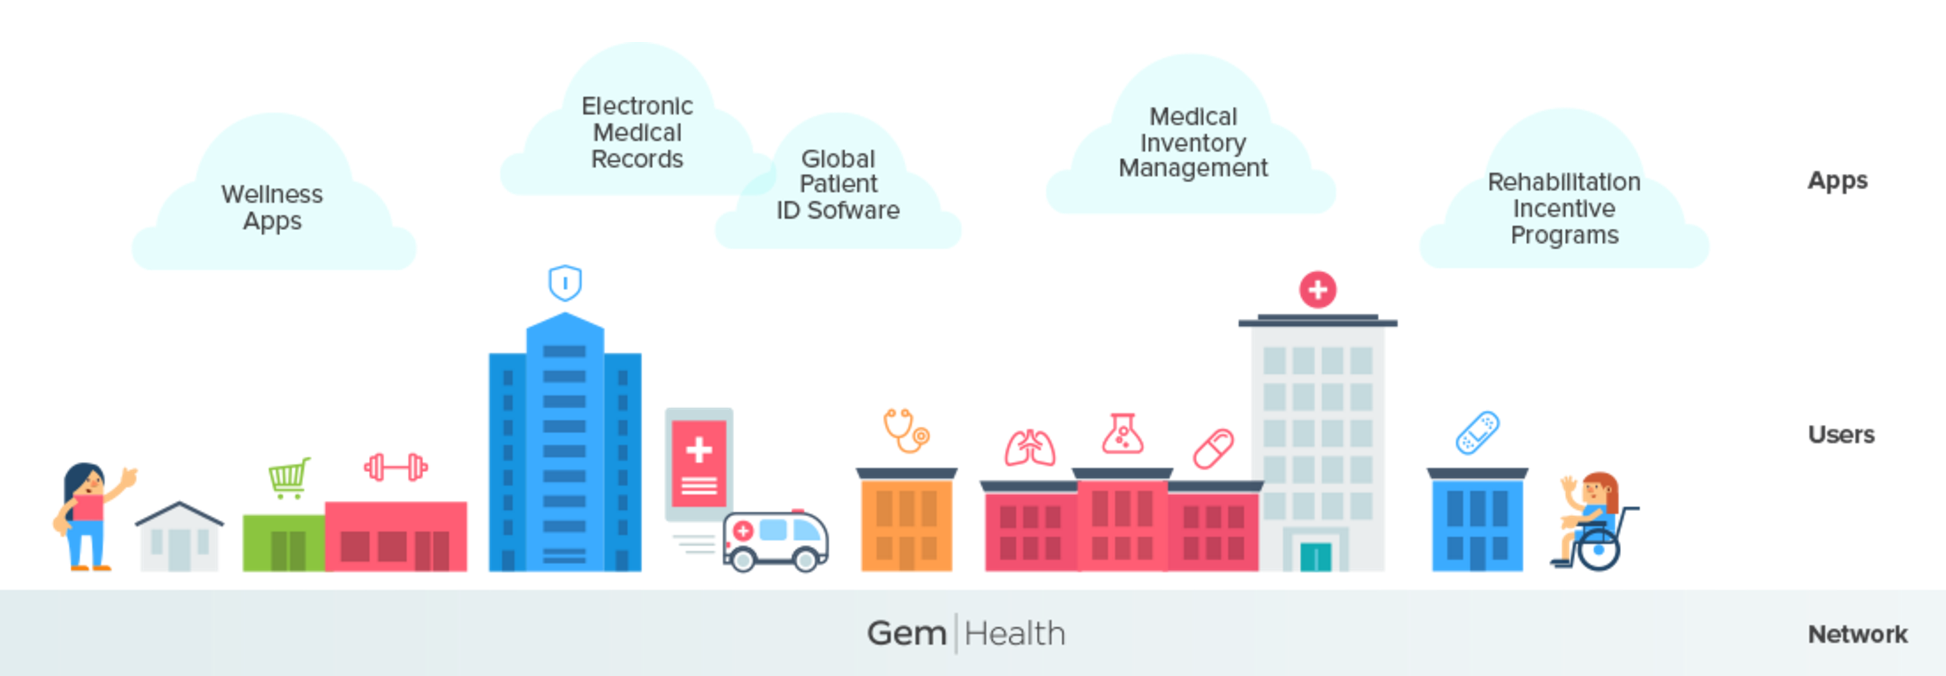 Gem: Why We're Building the Blockchain for Healthcare